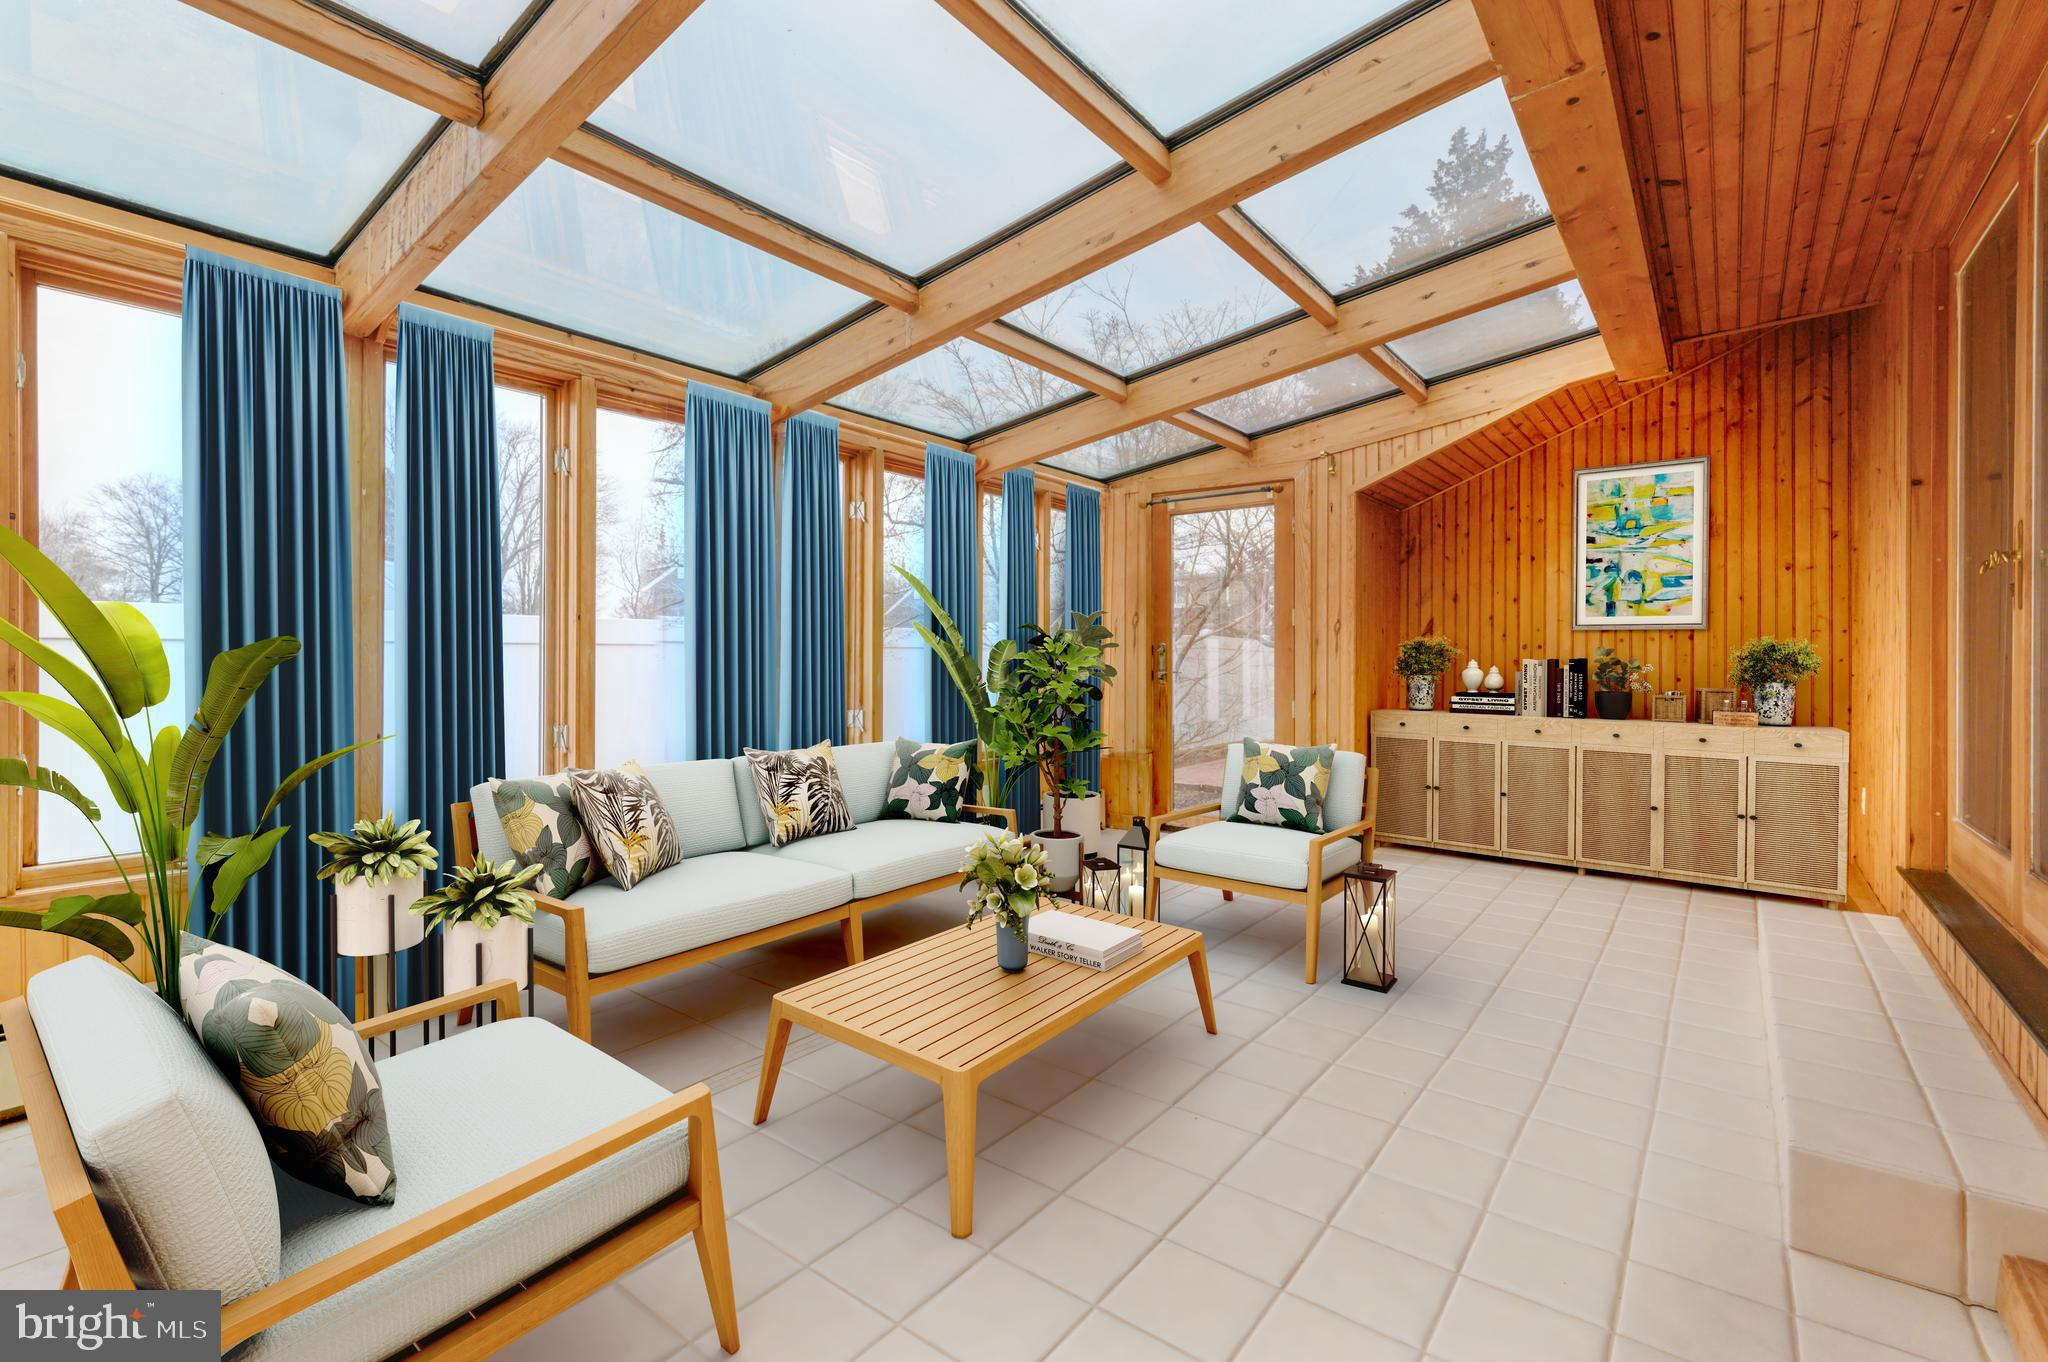 """$10,000 Buyer Credit available for an accepted offer on or before 06/24/2020.  ----   Want to The perfect layout for our """"Work at Home"""" world! Has it been a challenge for you and your family to adapt to working from home? Would you like to have a bit more privacy, peace and quiet while you work? This home's distinctive 5-room attached office space can provide it all. Even better? This sprawling ranch is """"priced to sell"""" and one of the best values per square foot on the market in greater Wilmington. You can live and work at the same location, or transform the office space into an expansive in-law suite, guest house or teenage retreat. The possibilities are endless! Picture this: You grab your morning coffee from the kitchen and make your commute by heading down 6 steps to your attached sun-lit workspace. Your office boasts its own exterior entrance door, porch, half bath and 5 parking spaces conveniently located on Foulk Road. Your attached home has its own driveway off Lanside Drive, immaculate hardwood floors, 2 wood-burning fireplaces and a spacious Four Seasons room. Incredibly unique and well-maintained, this home is just waiting for your personal touch."""